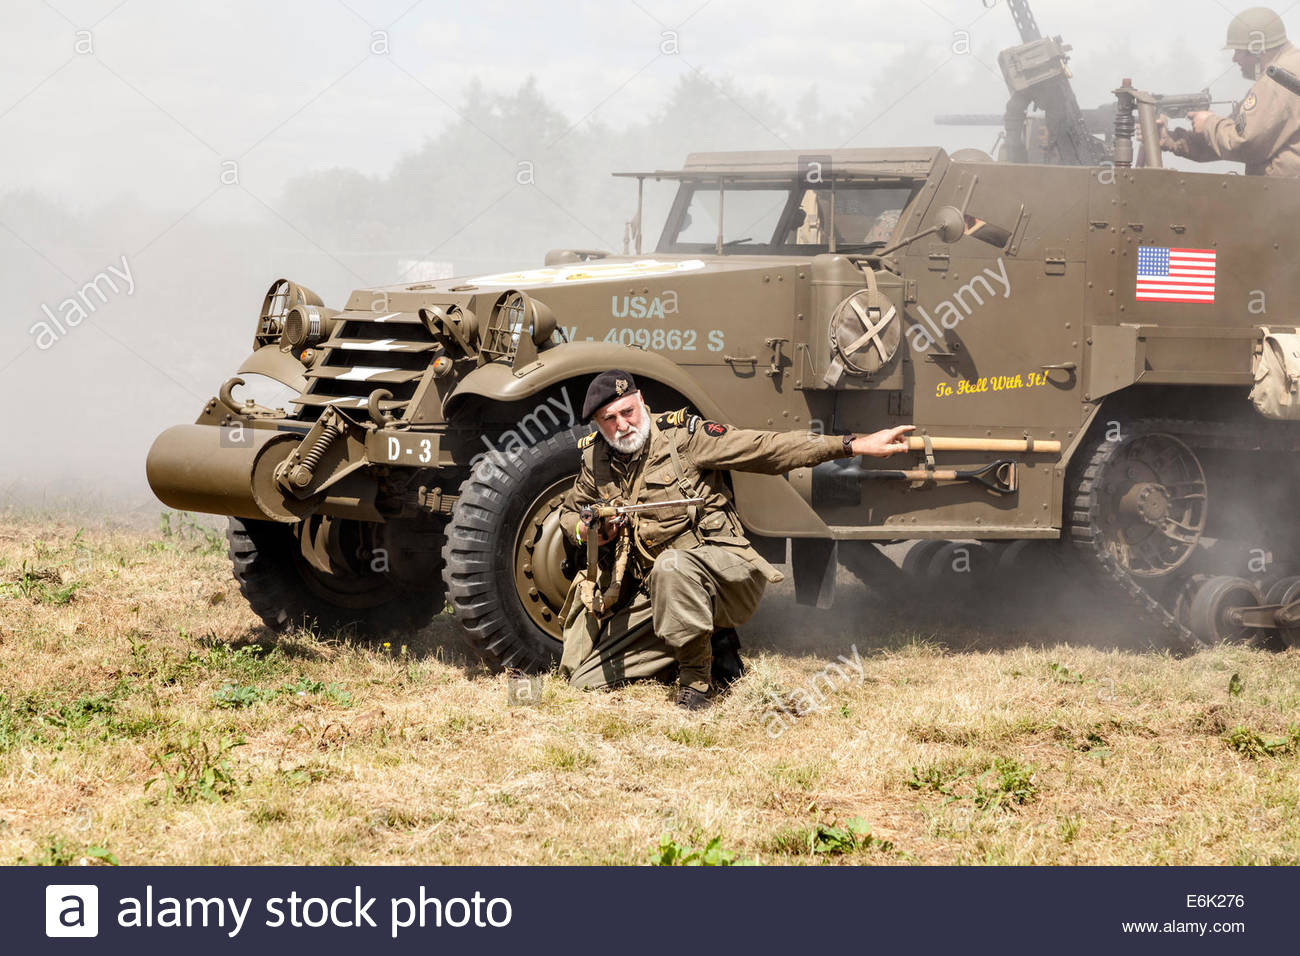 World War Two re-enactment featuring a US army half-track and a Royal Navy Commando - Stock Image